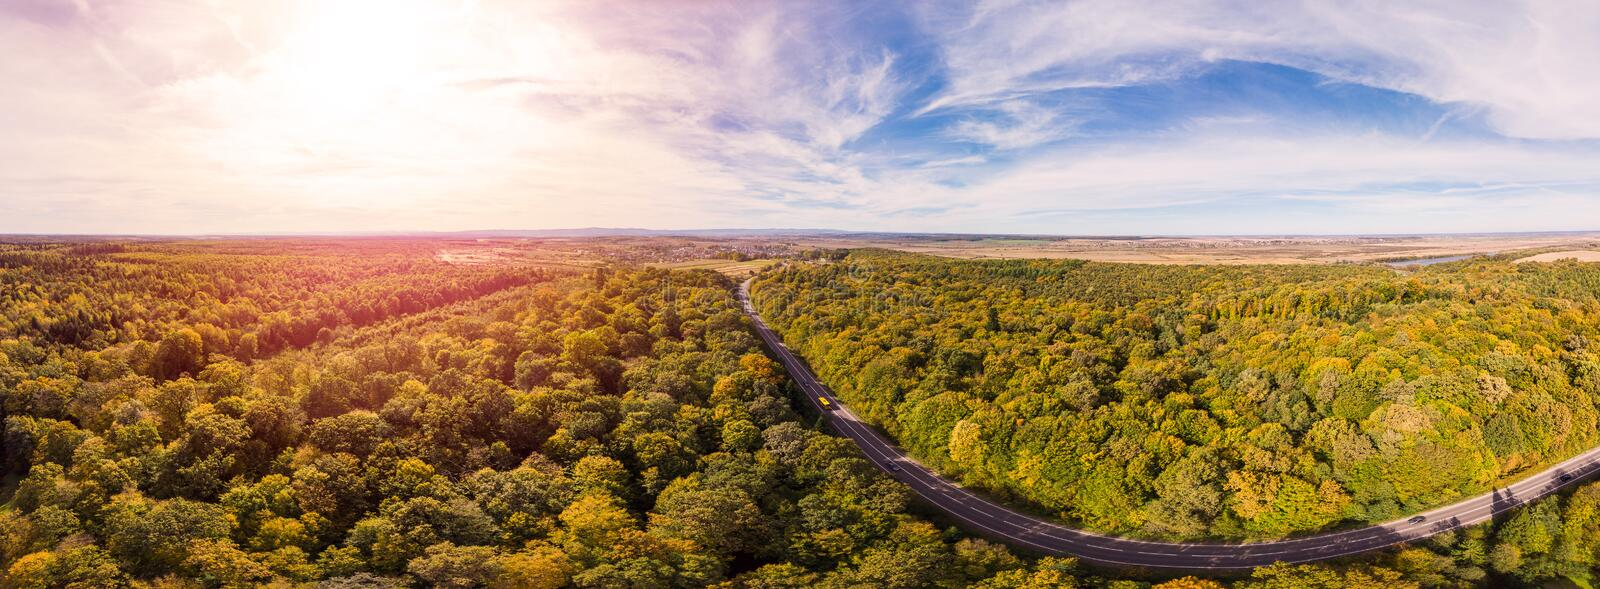 180 degrees scenic landscape of countryside in beautiful autumn sunny day. Aerial drone view of road laid between oak forest royalty free stock images